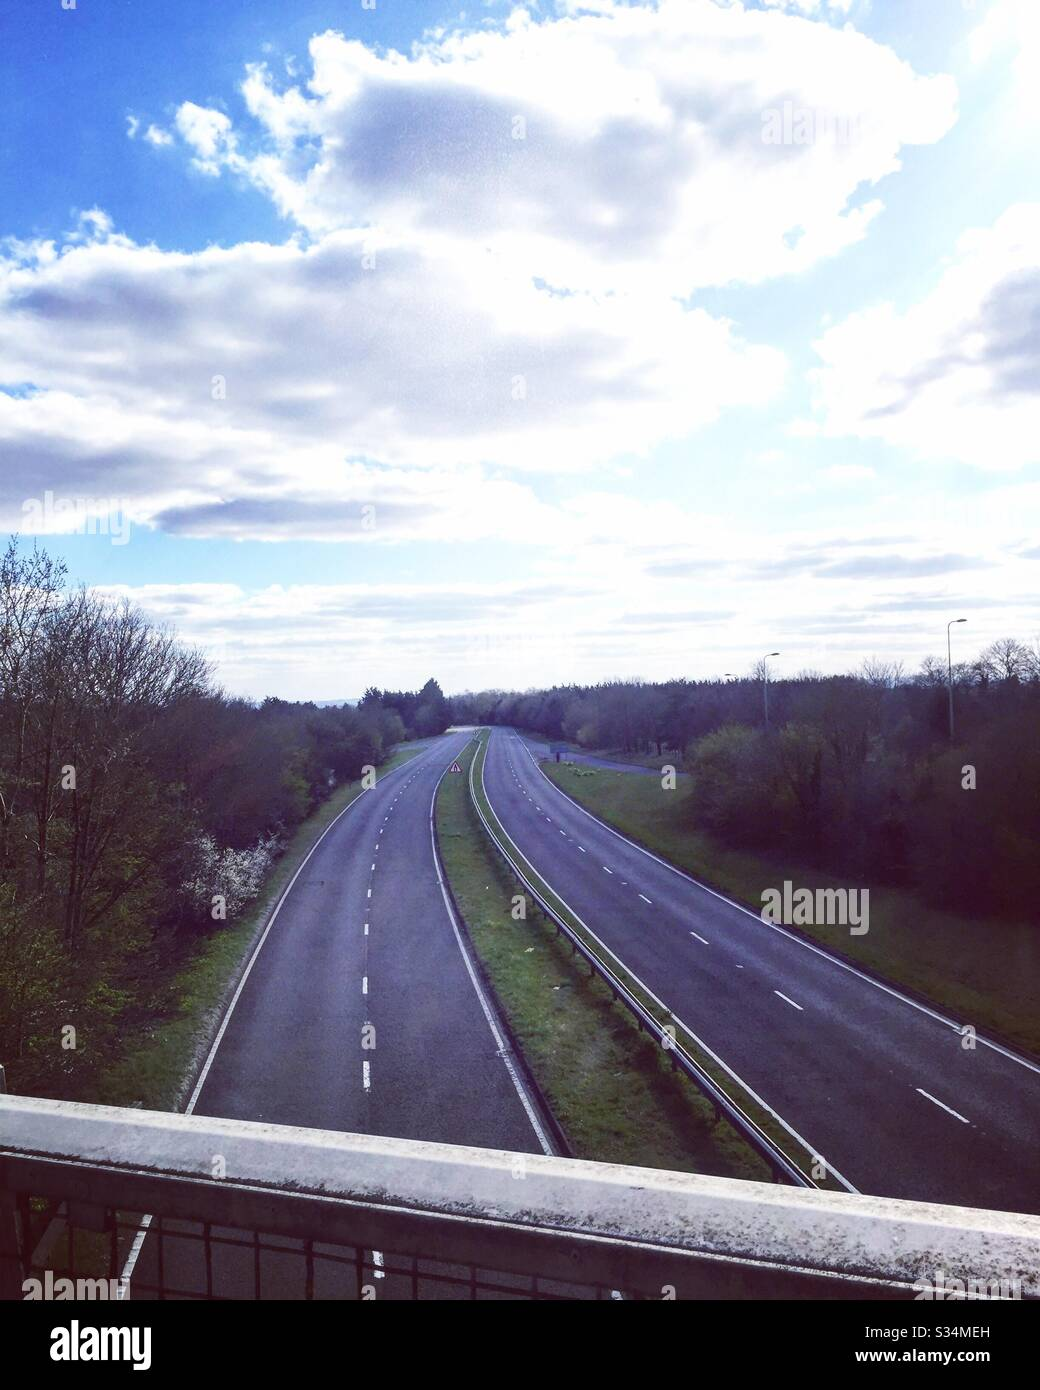 no-traffic-on-a420-during-lockdown-S34ME